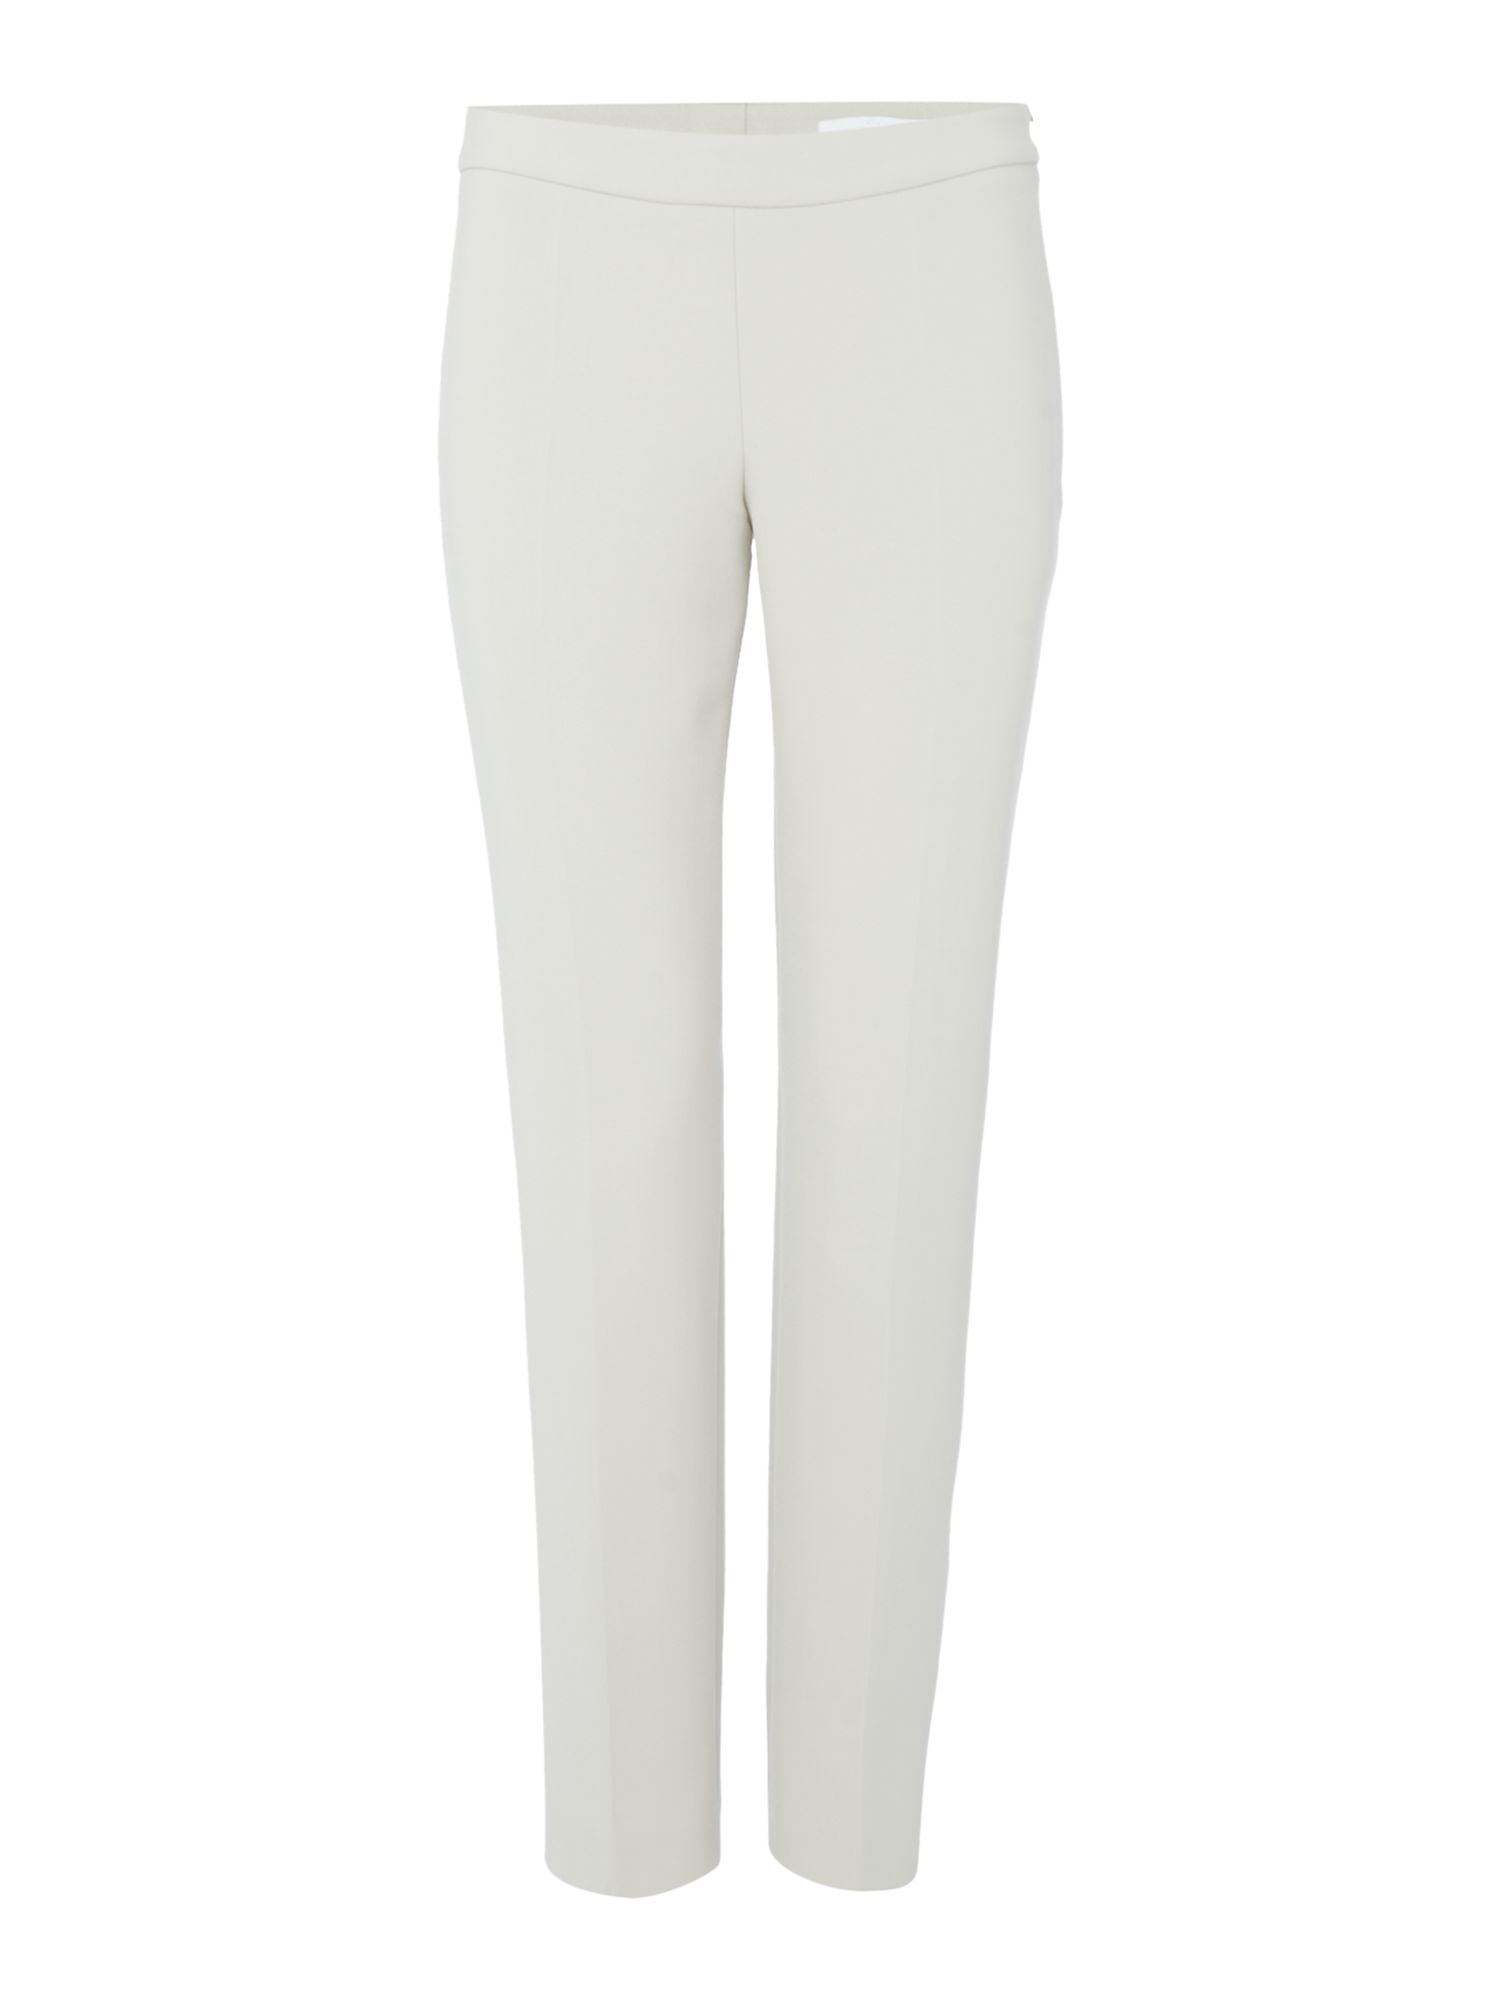 Hugo Boss Slim fit trouser with side zip, Silver